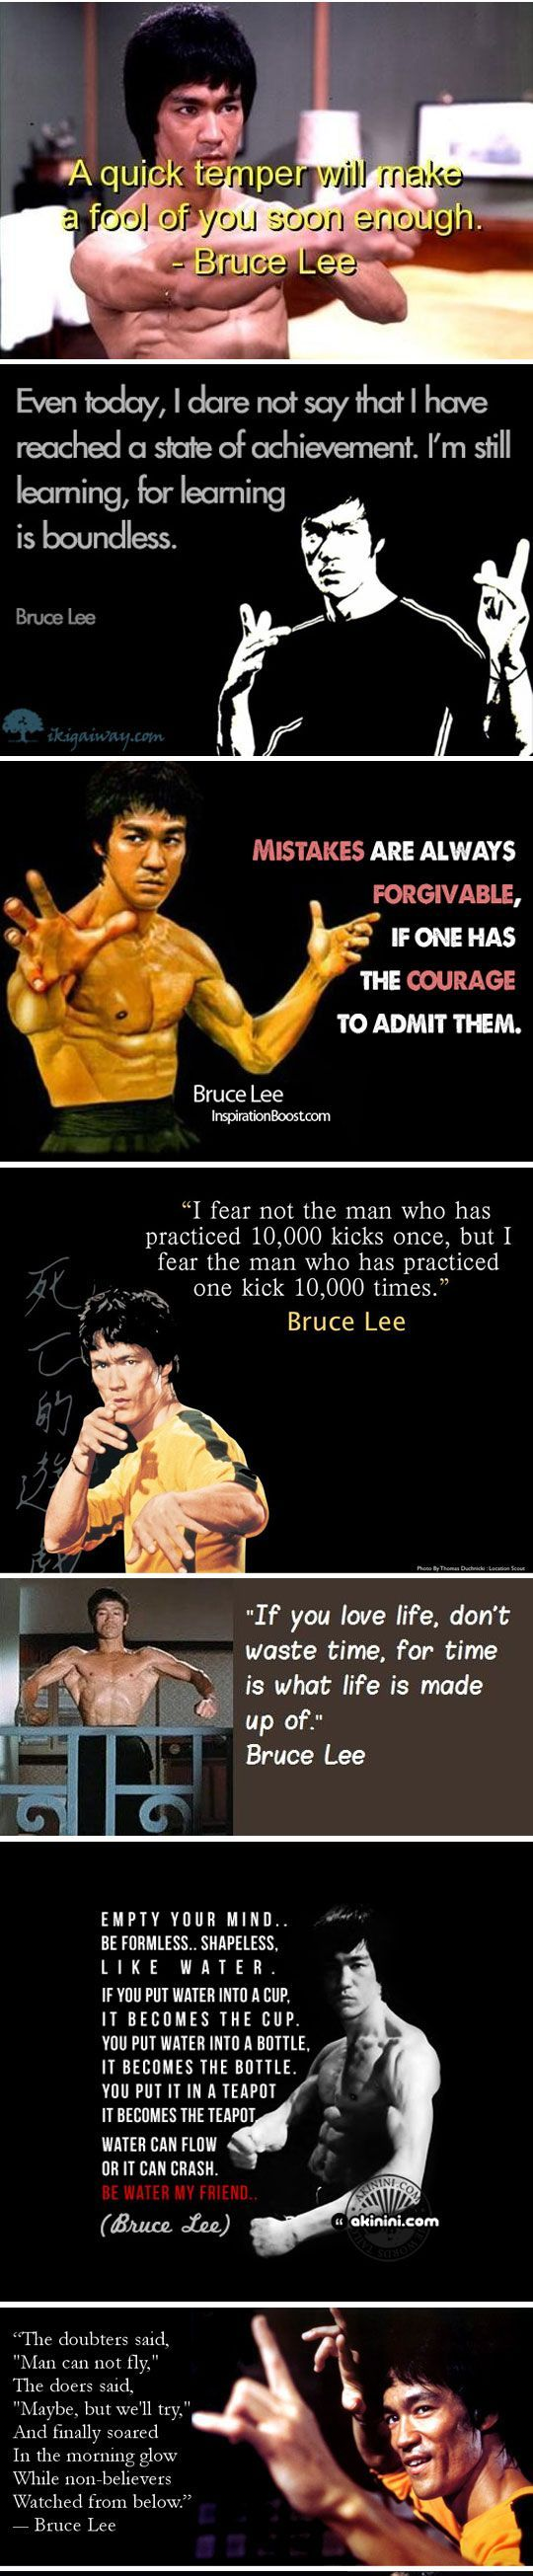 32 MOTIVATIONAL Bruce Lee QUOTES #bruce lee #lee